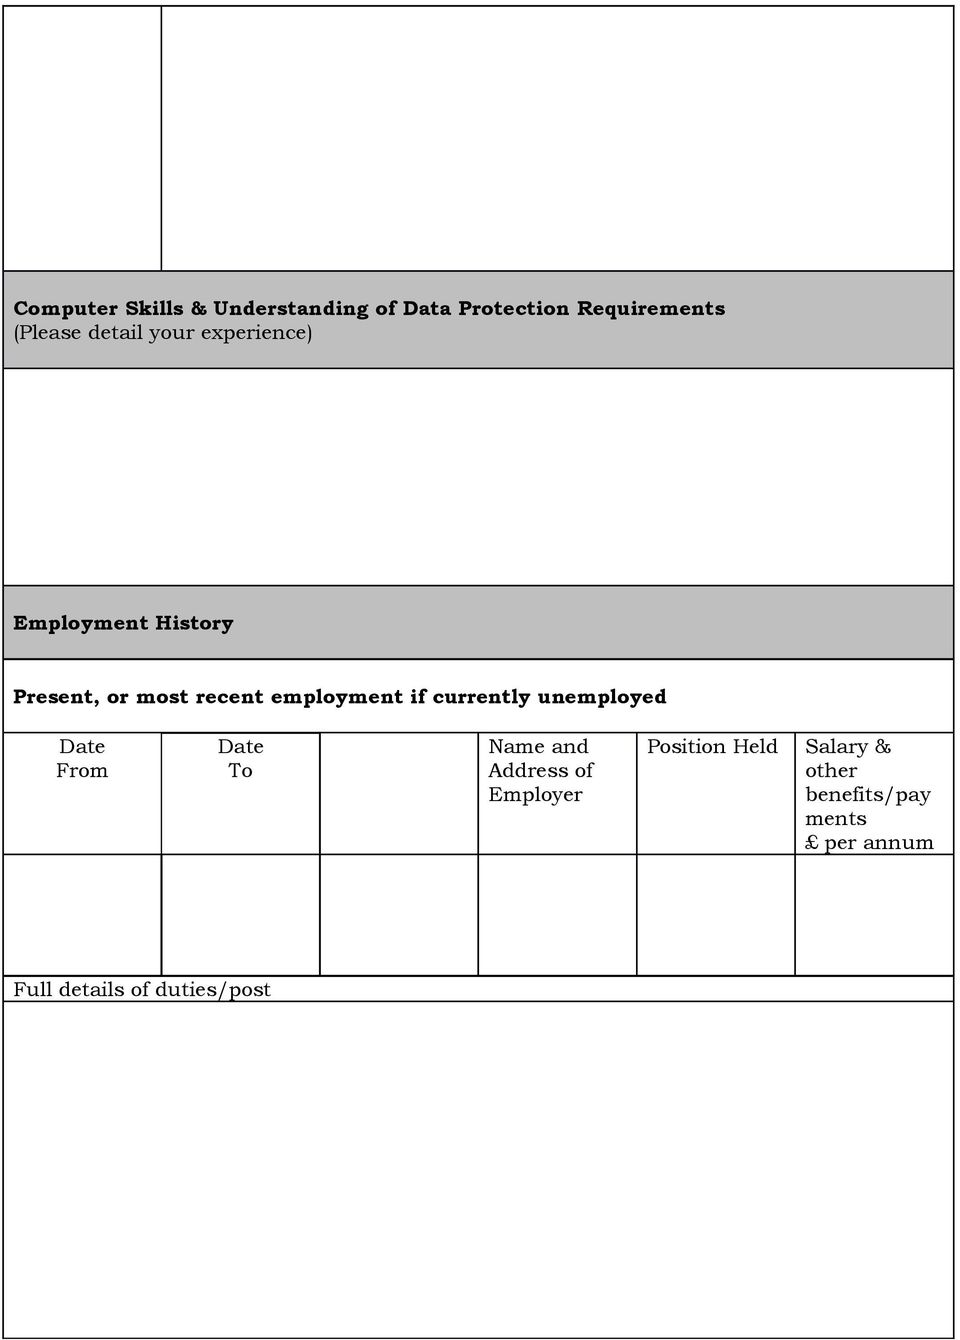 employment if currently unemployed Date From Date To Name and Address of